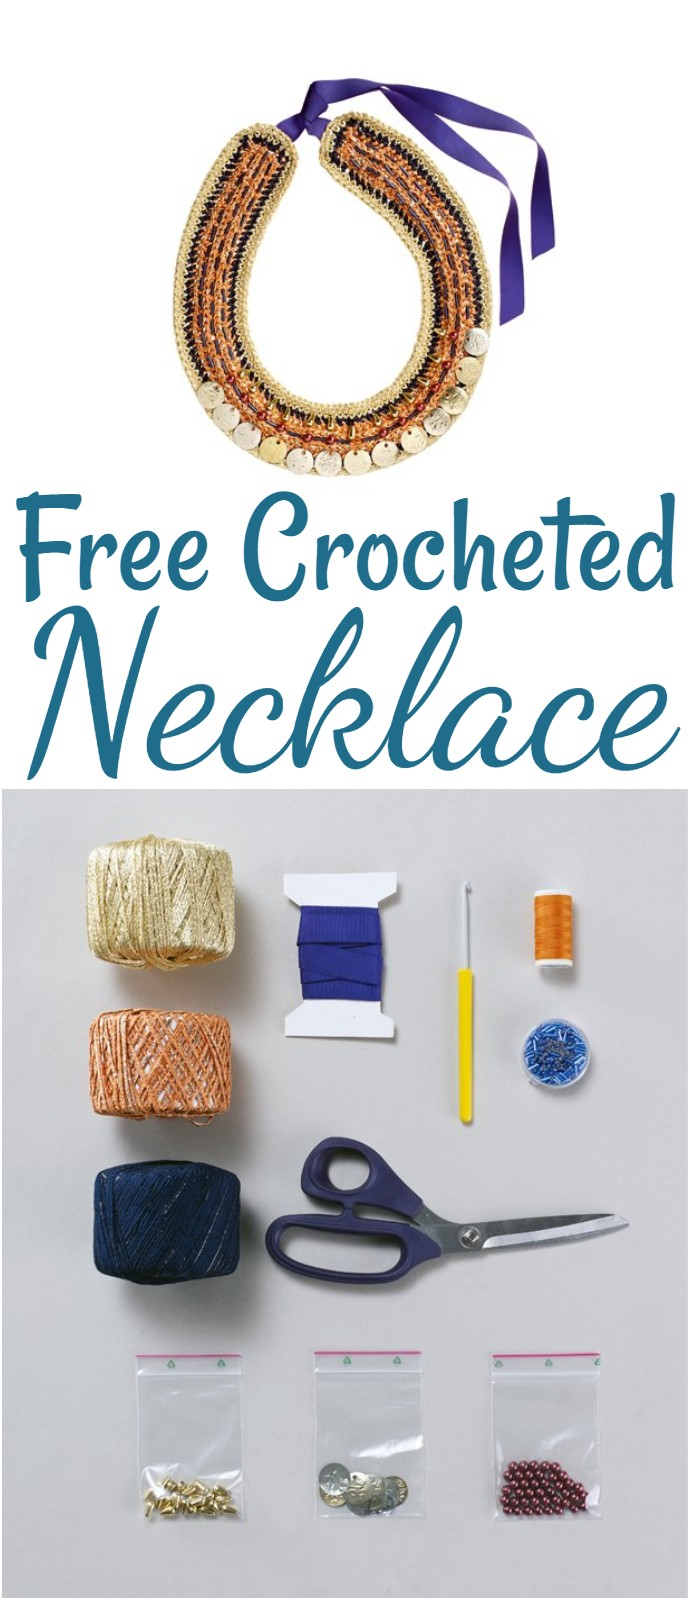 Free Crocheted Necklace